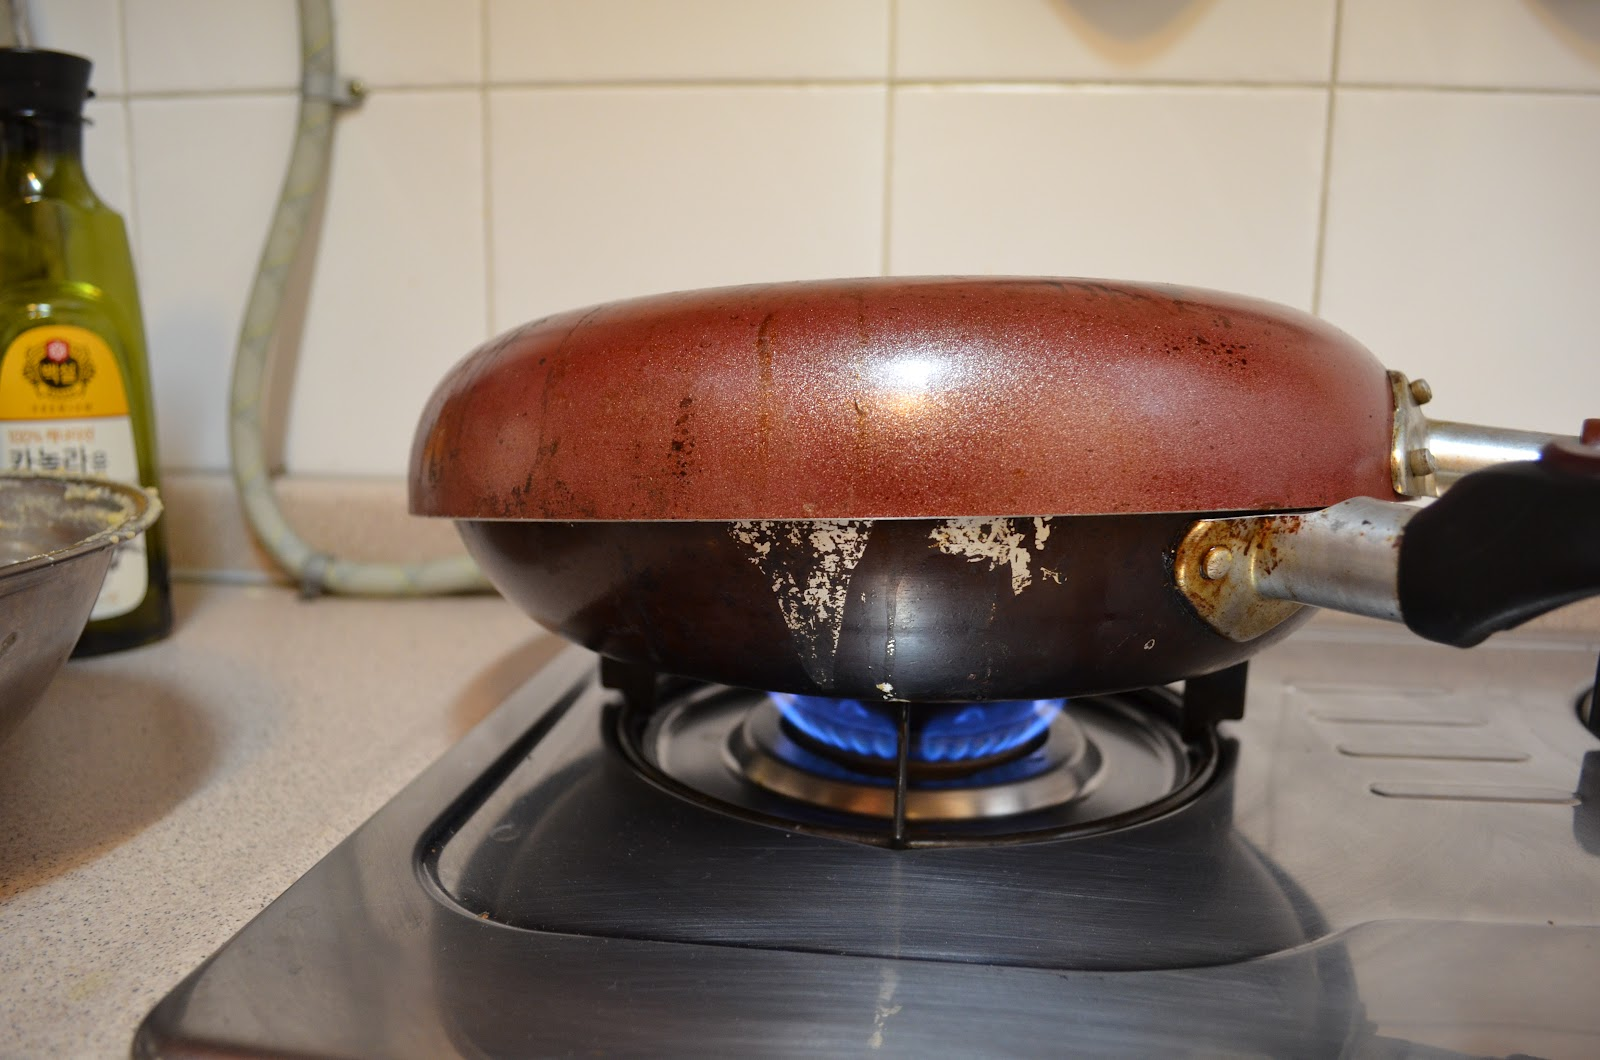 how to cook a banana on the stove